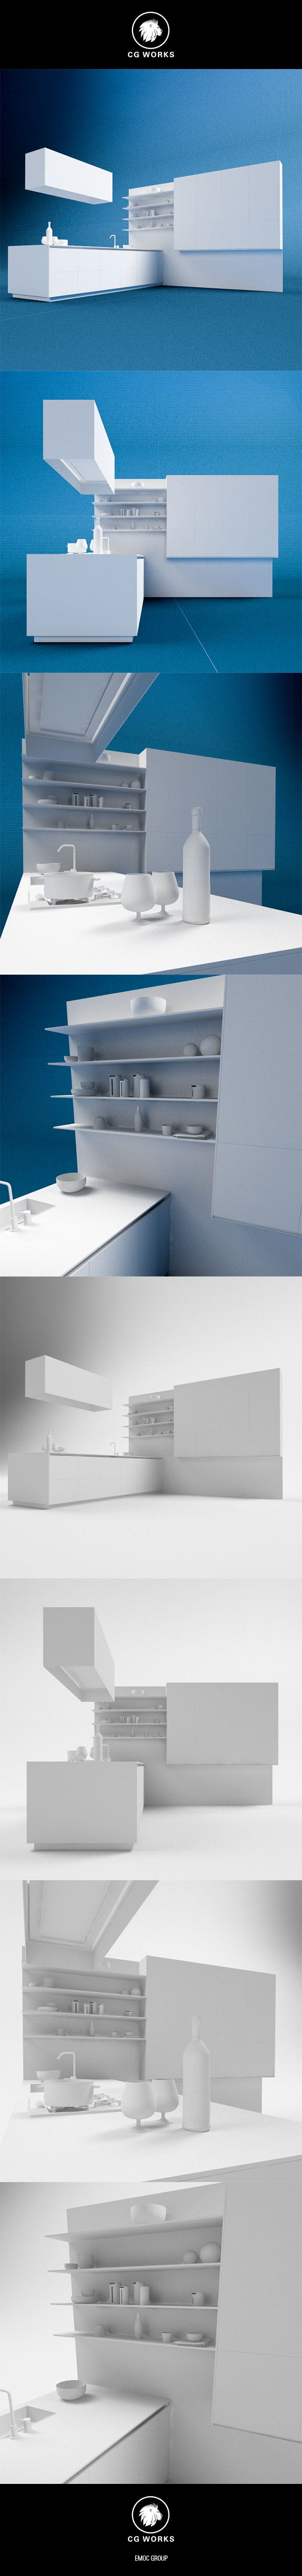 Kitchen C4D & OBJ - 3DOcean Item for Sale